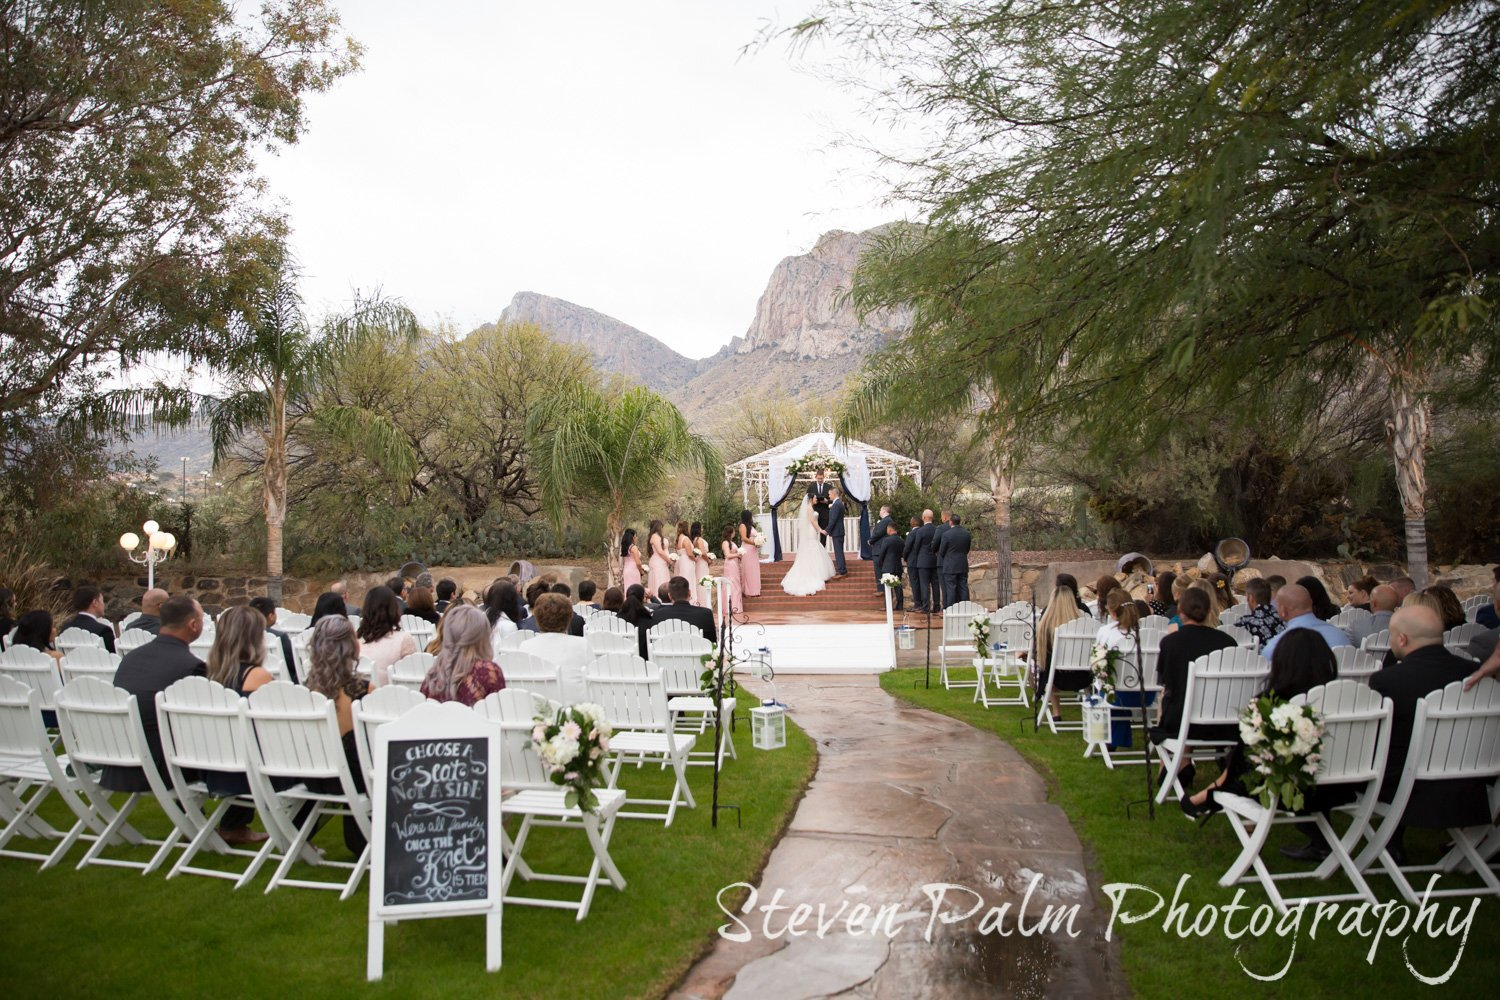 The Buttes At Reflections Best Wedding Photos Steven Palm Photography